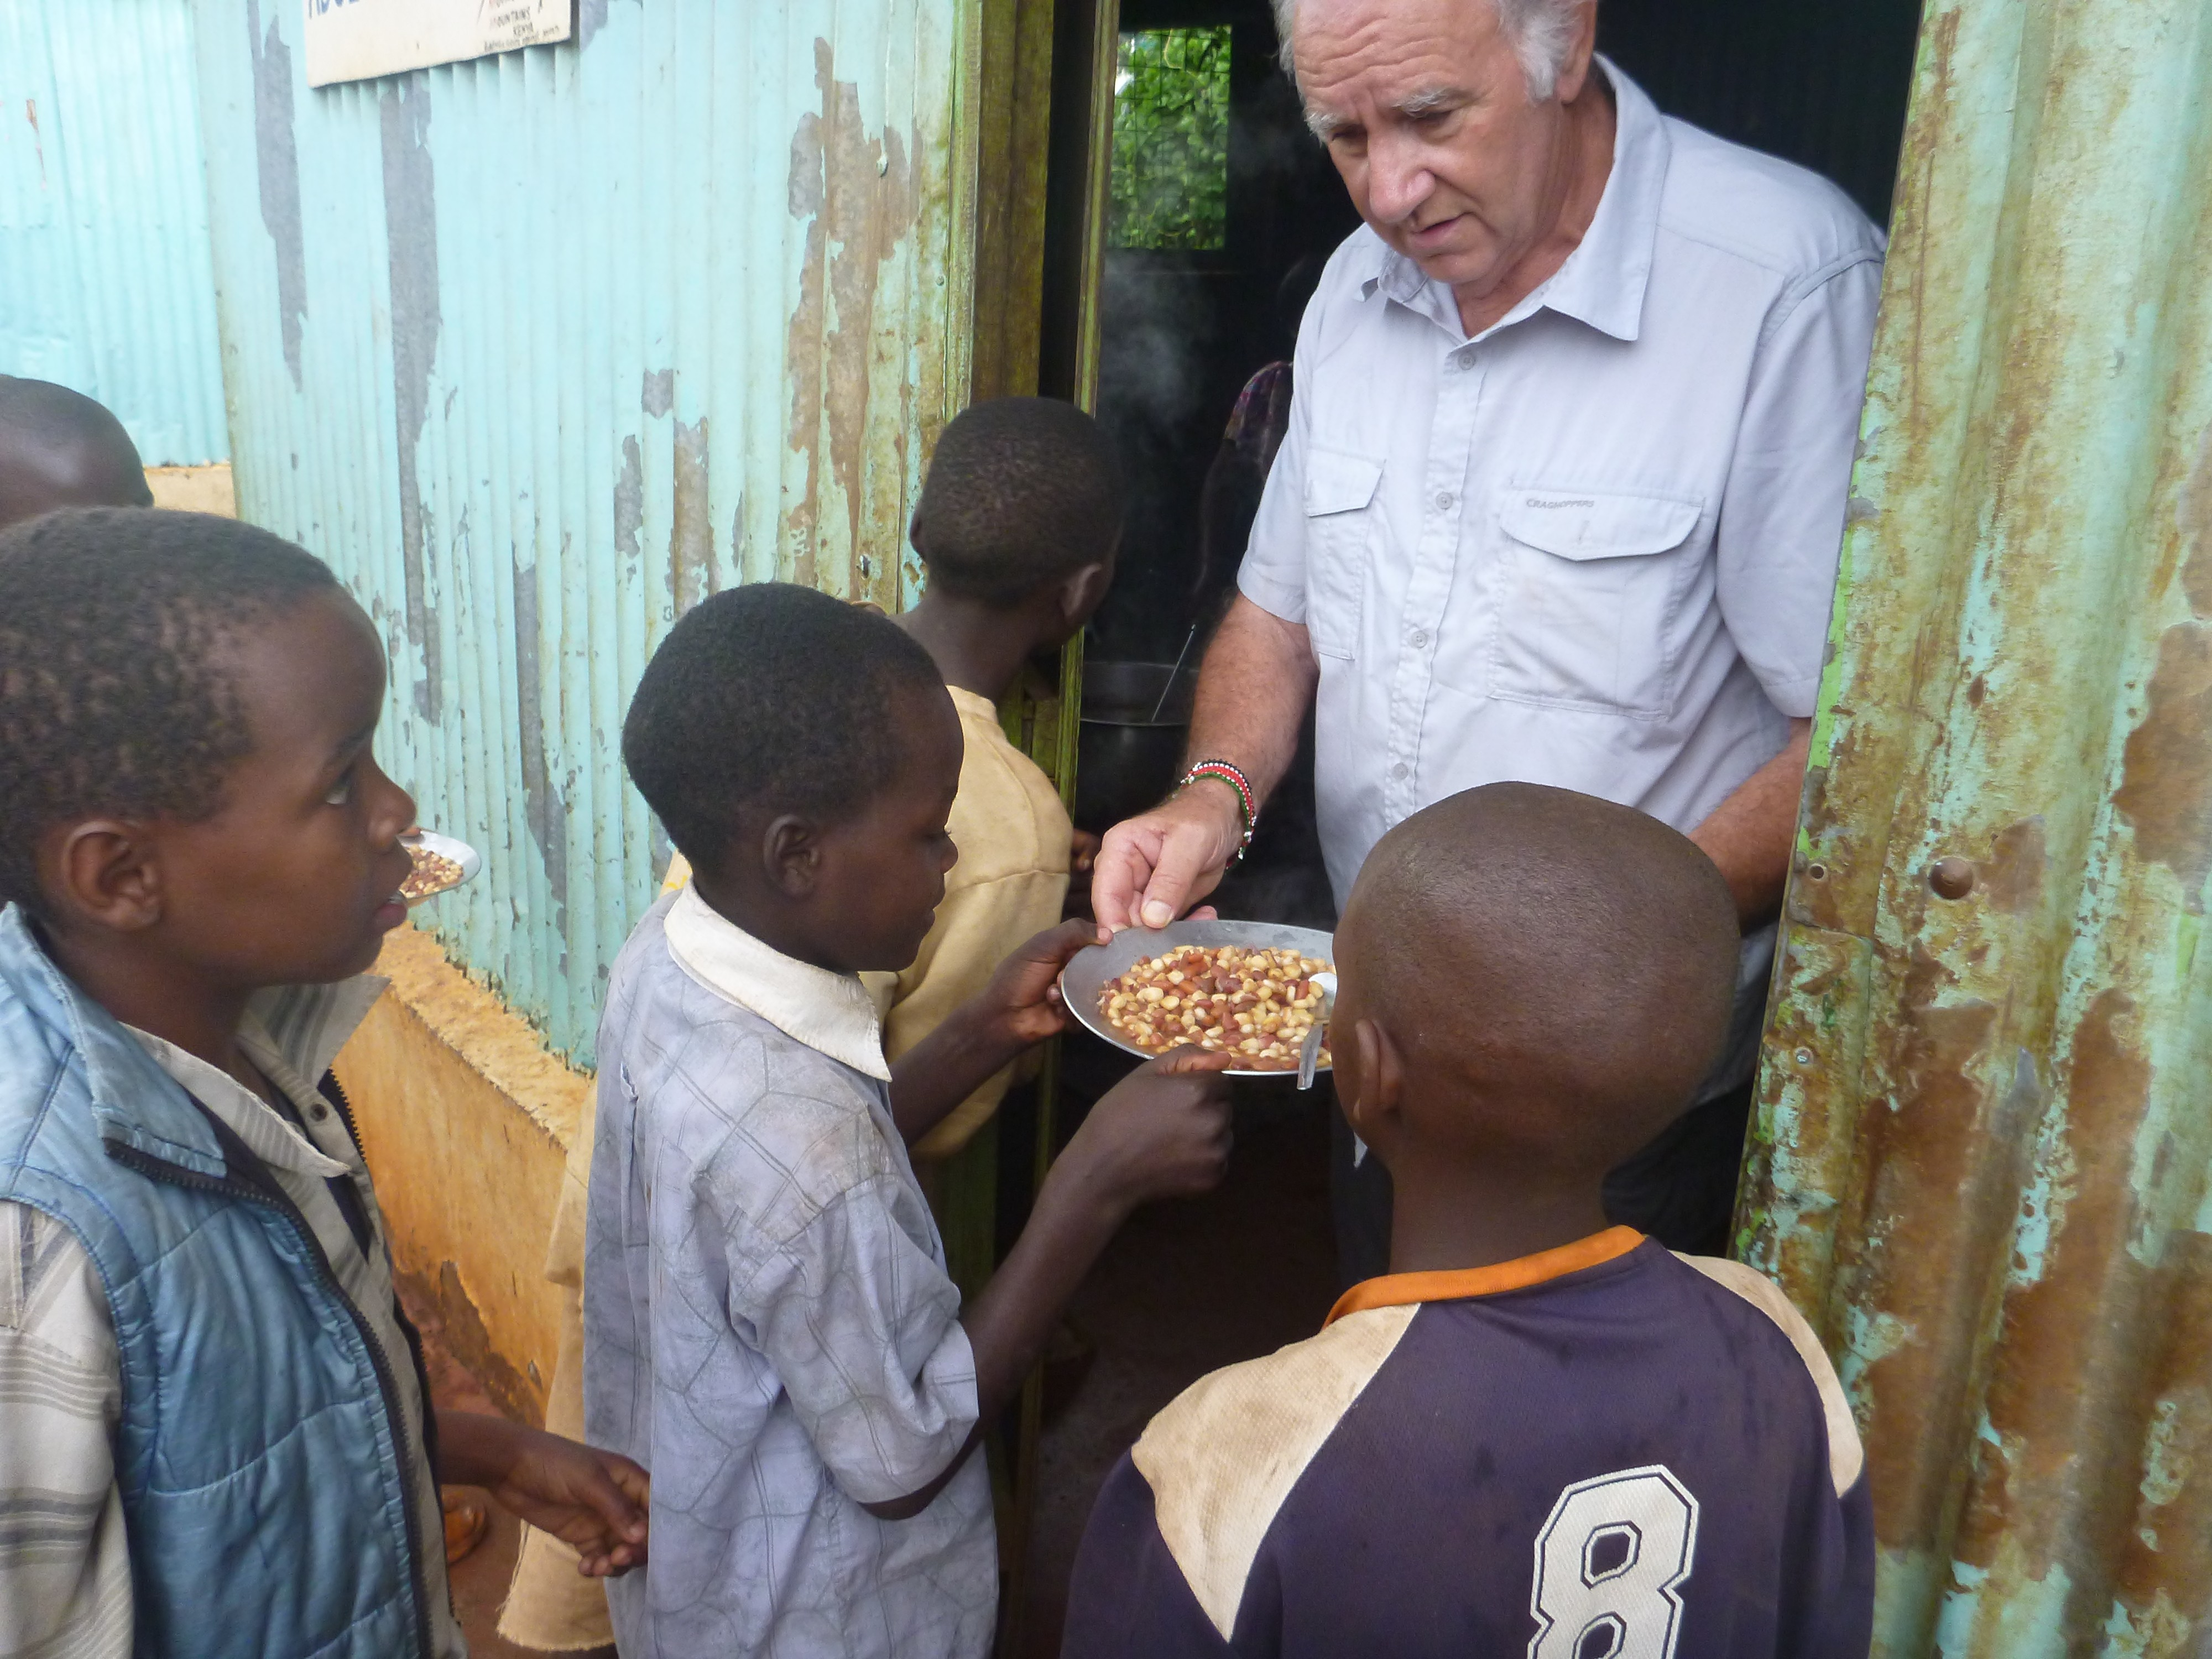 Roger handing out meals to the many Street Children